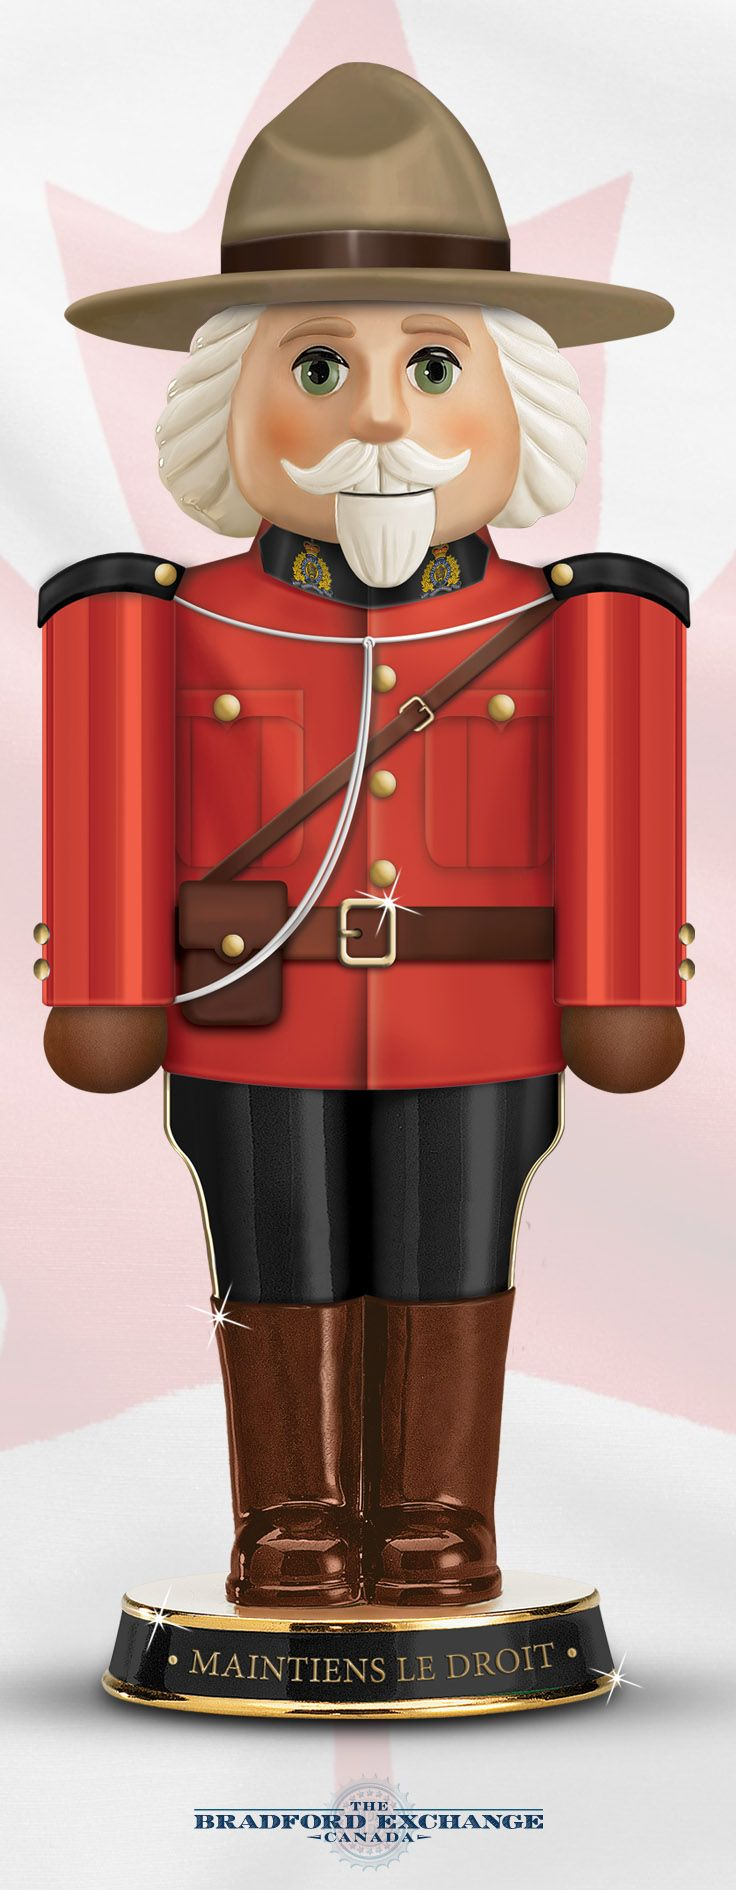 Maintiens le droit! Show off your Mounties pride with this first-of-its-kind RCMP nutcracker.